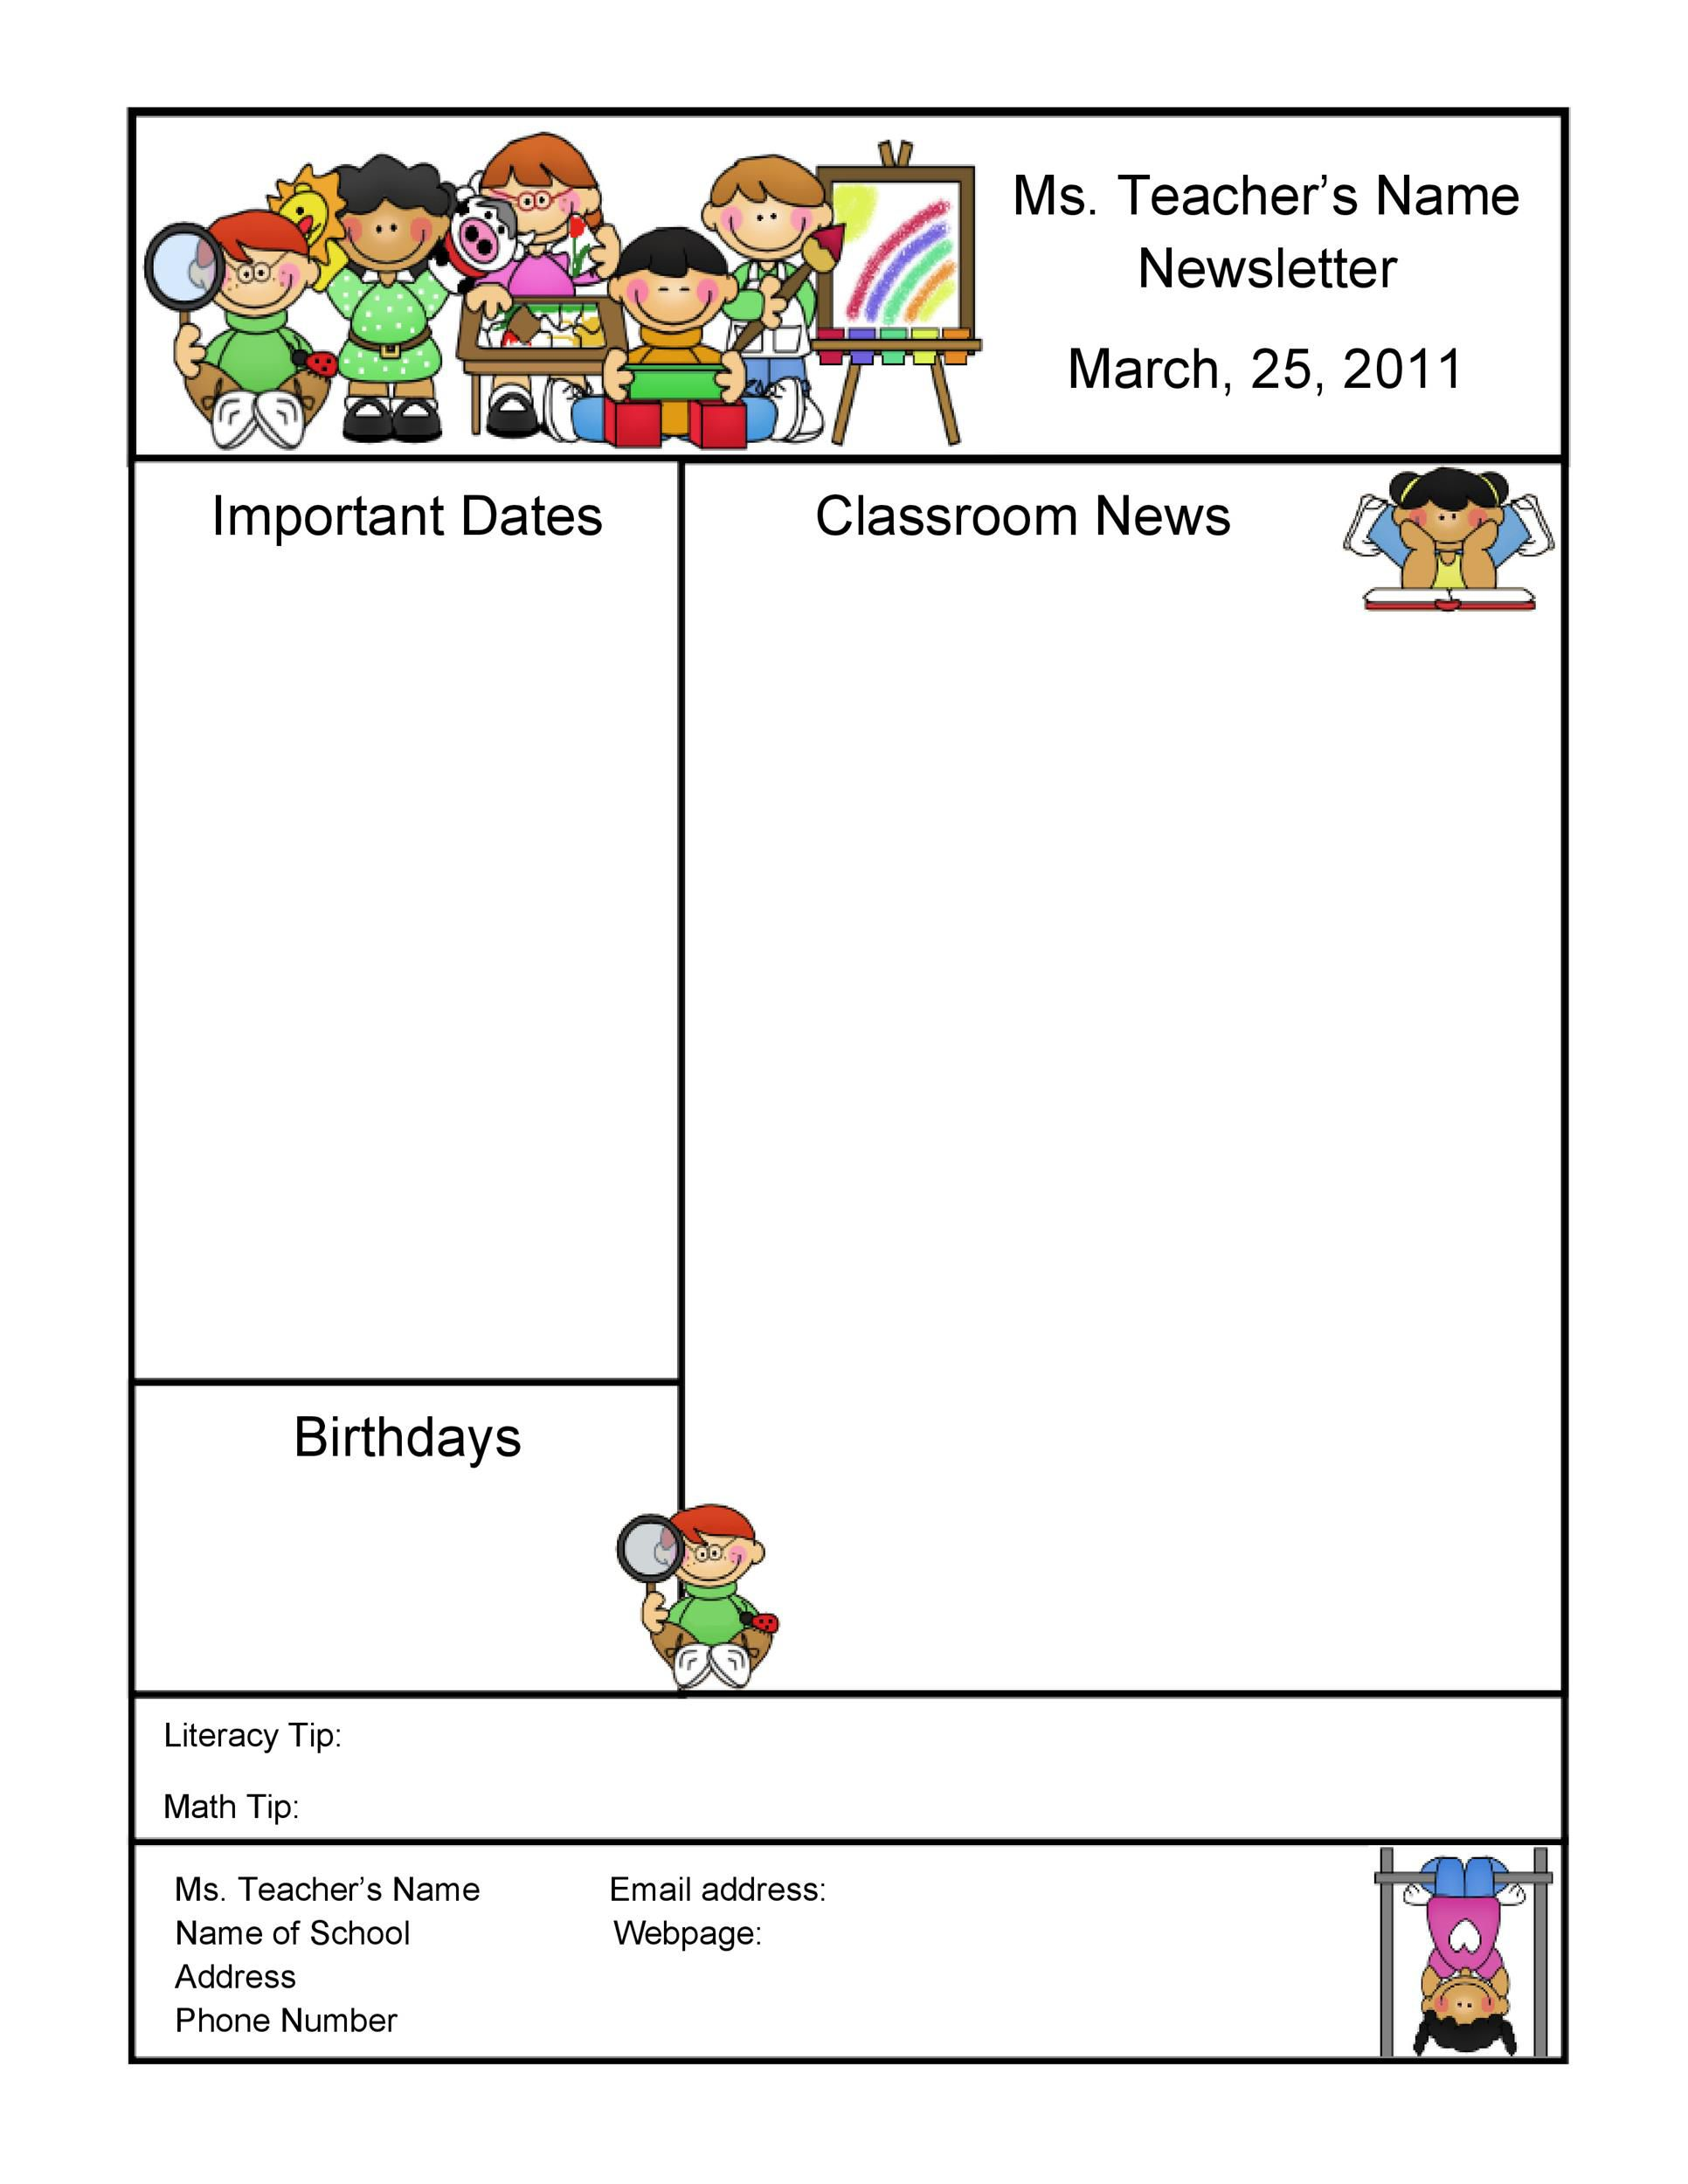 006 Shocking School Newsletter Template Word Concept  Free Classroom For MicrosoftFull